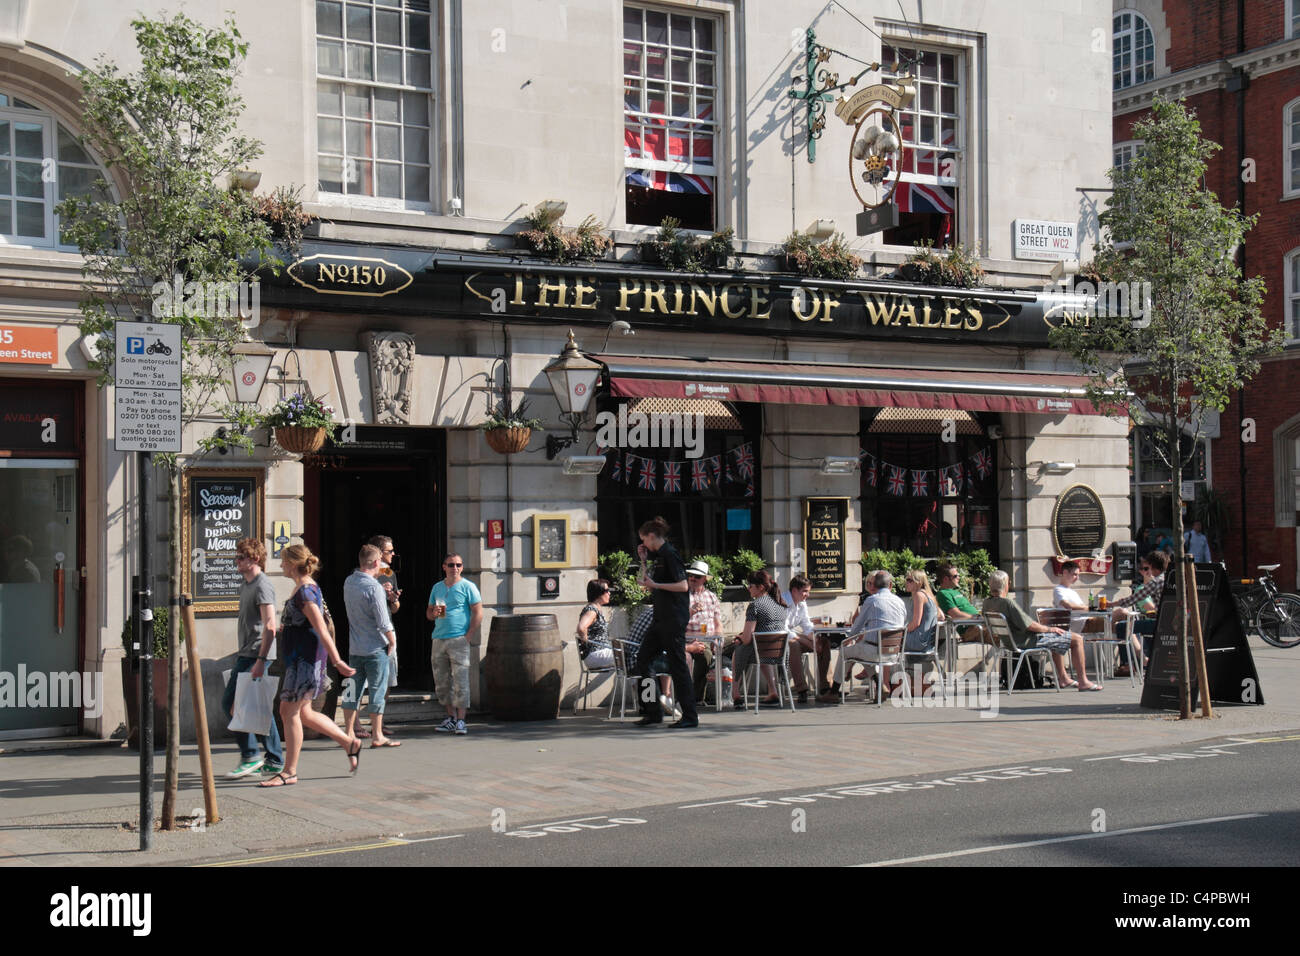 People have an afternoon drink outside The Prince of Wales public house in St Martins Lane, Covent Garden, London, - Stock Image